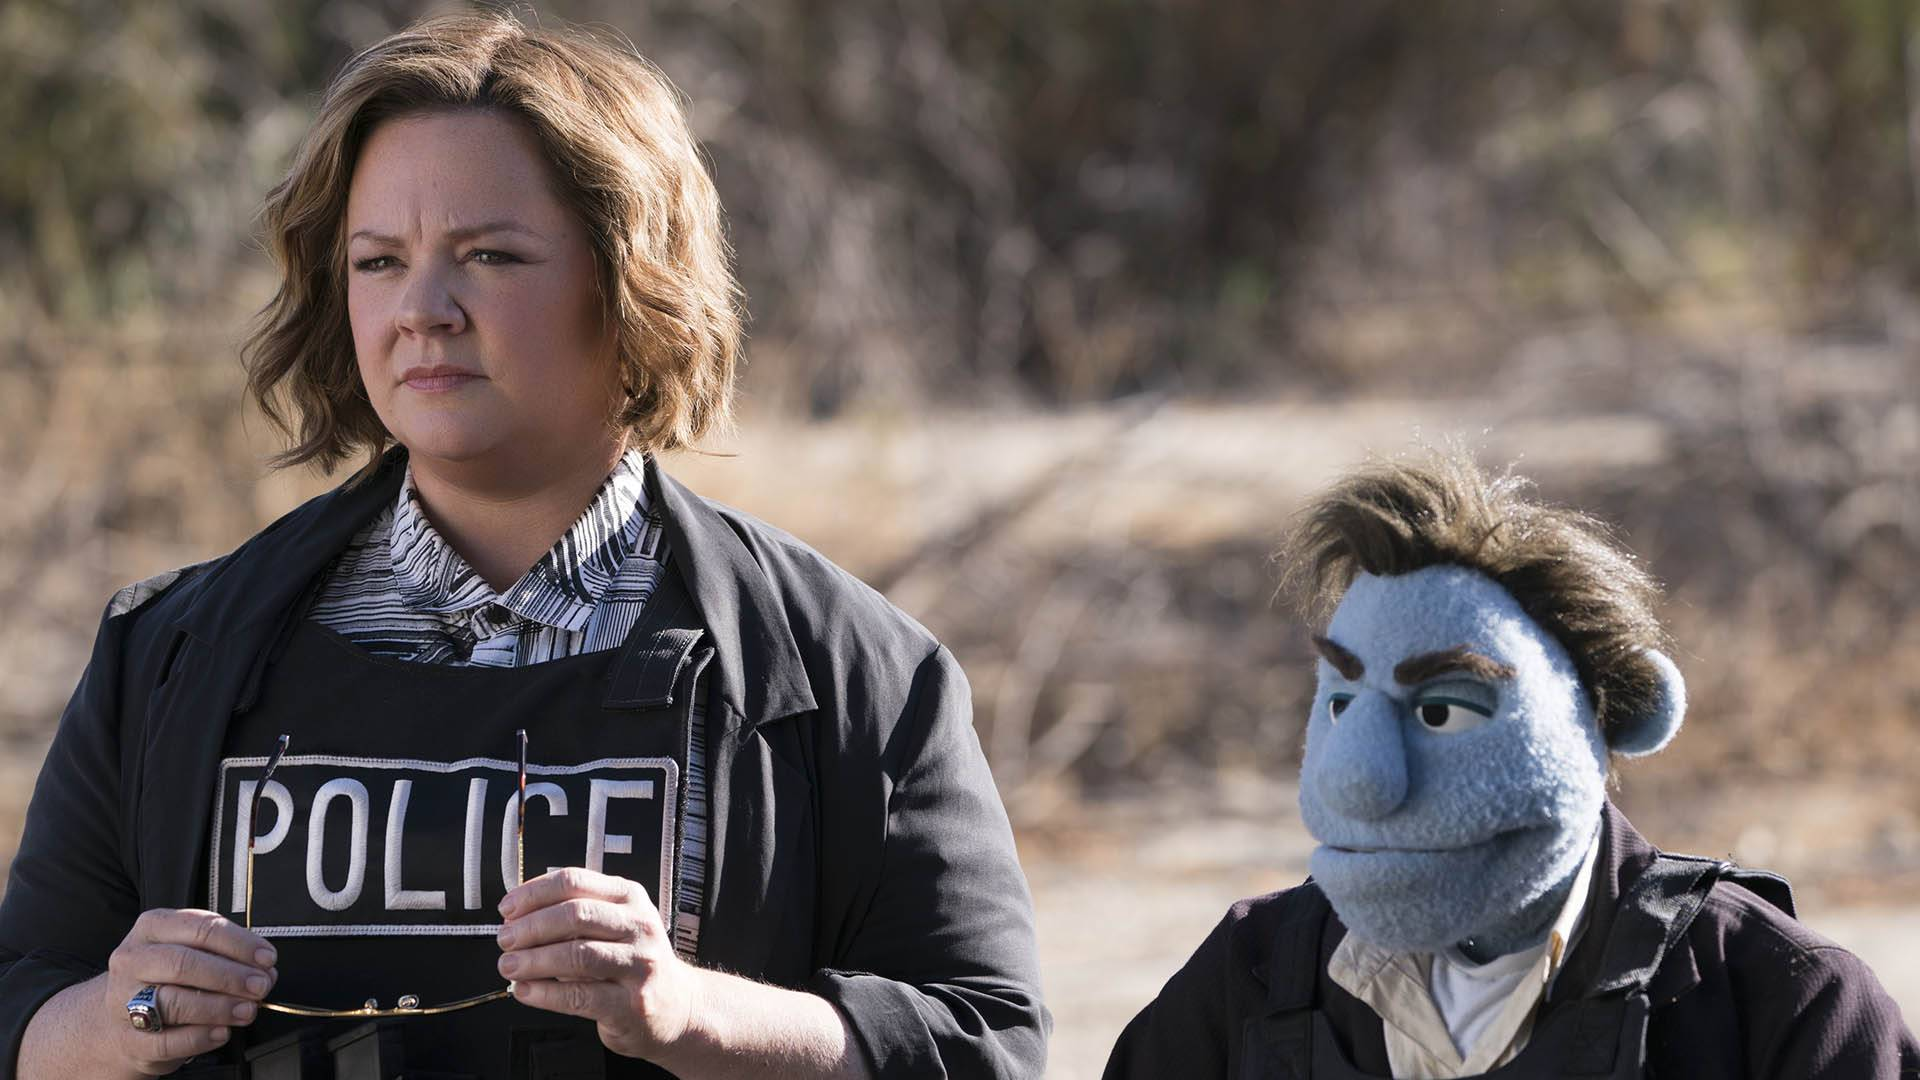 Axl Movie 2018 movie watch: amarillo film options for aug. 23 to 30, with